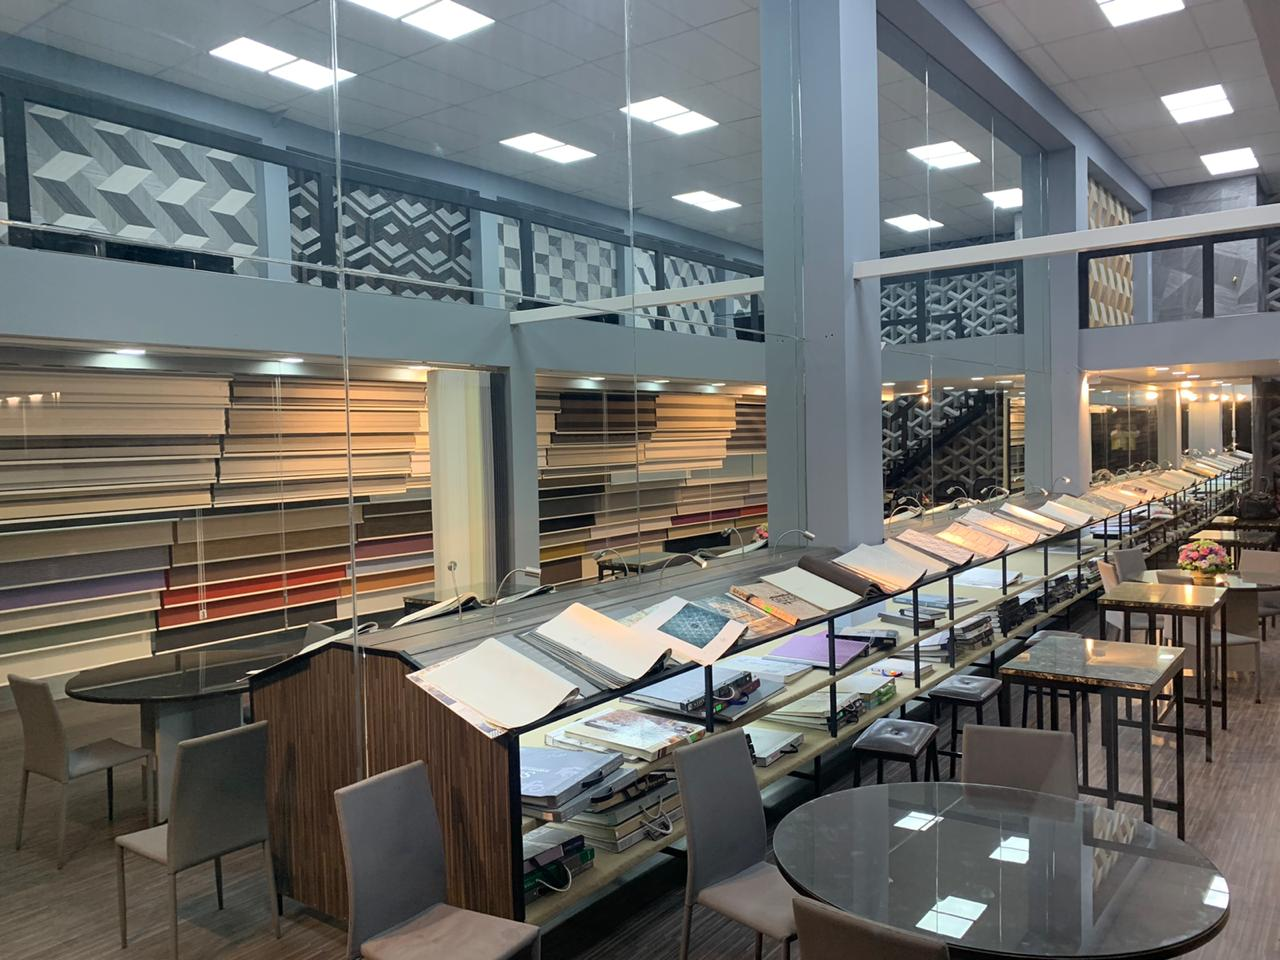 PLAZA FACTORY BLINDS